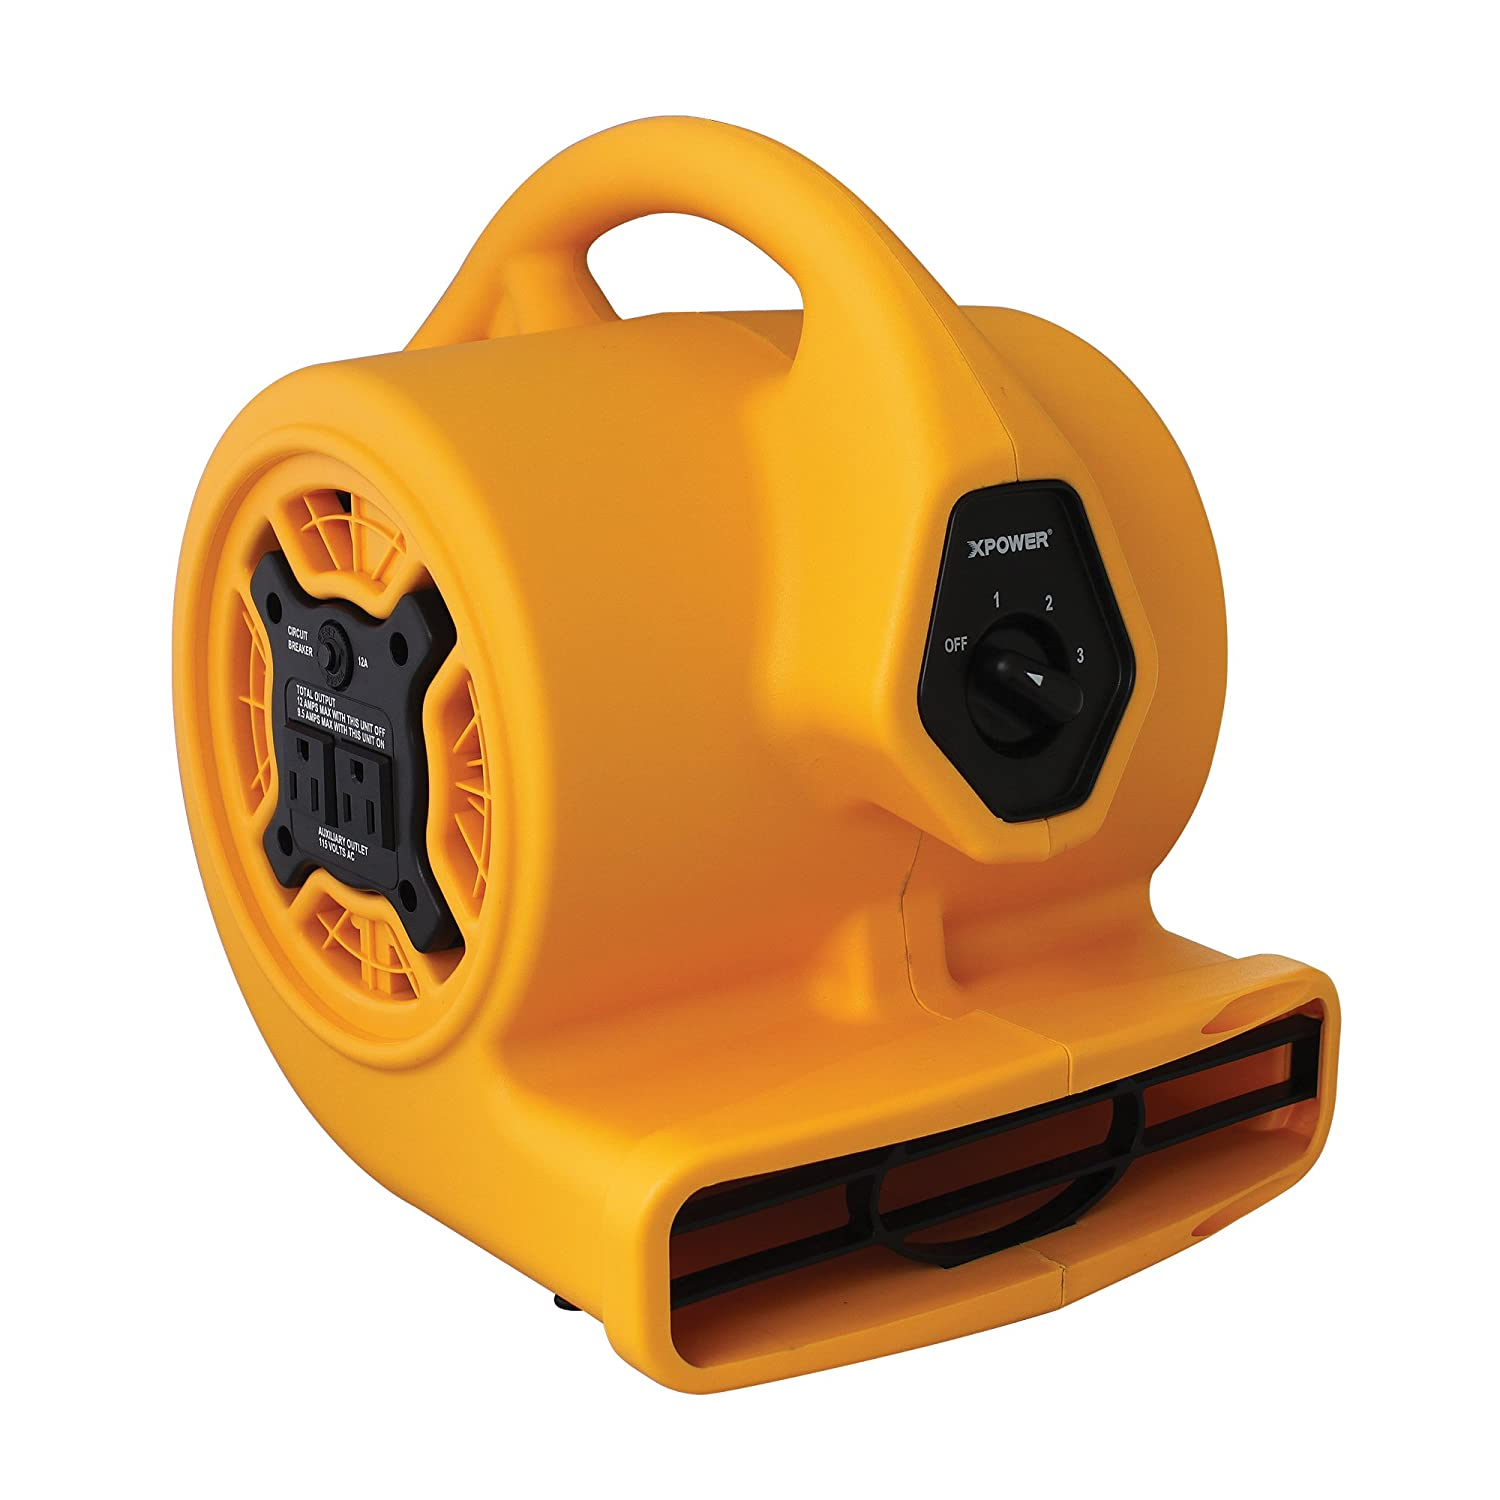 XPOWER P-130A Mini Air Mover, Floor Fan, Dryer, Utility Blower with Built-In Dual Outlets for Daisy Chain, 1/5 HP, 700 CFM, 3 Speeds, Yellow